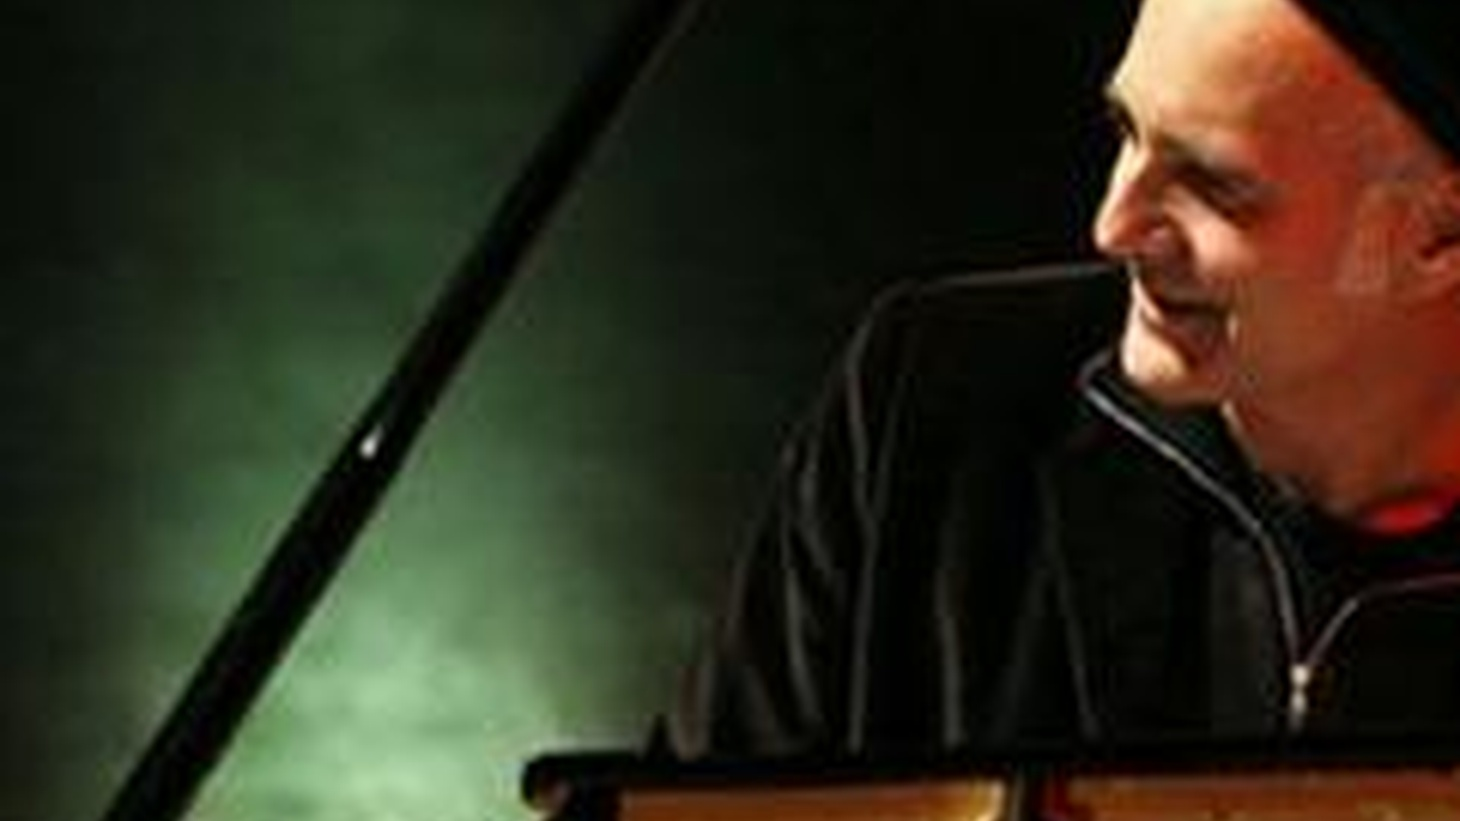 Composer and pianist Ludovico Einaudi joins Tom Schnabel for a live set and interview.  Einaudi is very popular in England, France, Germany, and his native Italy for his sweeping live concerts.